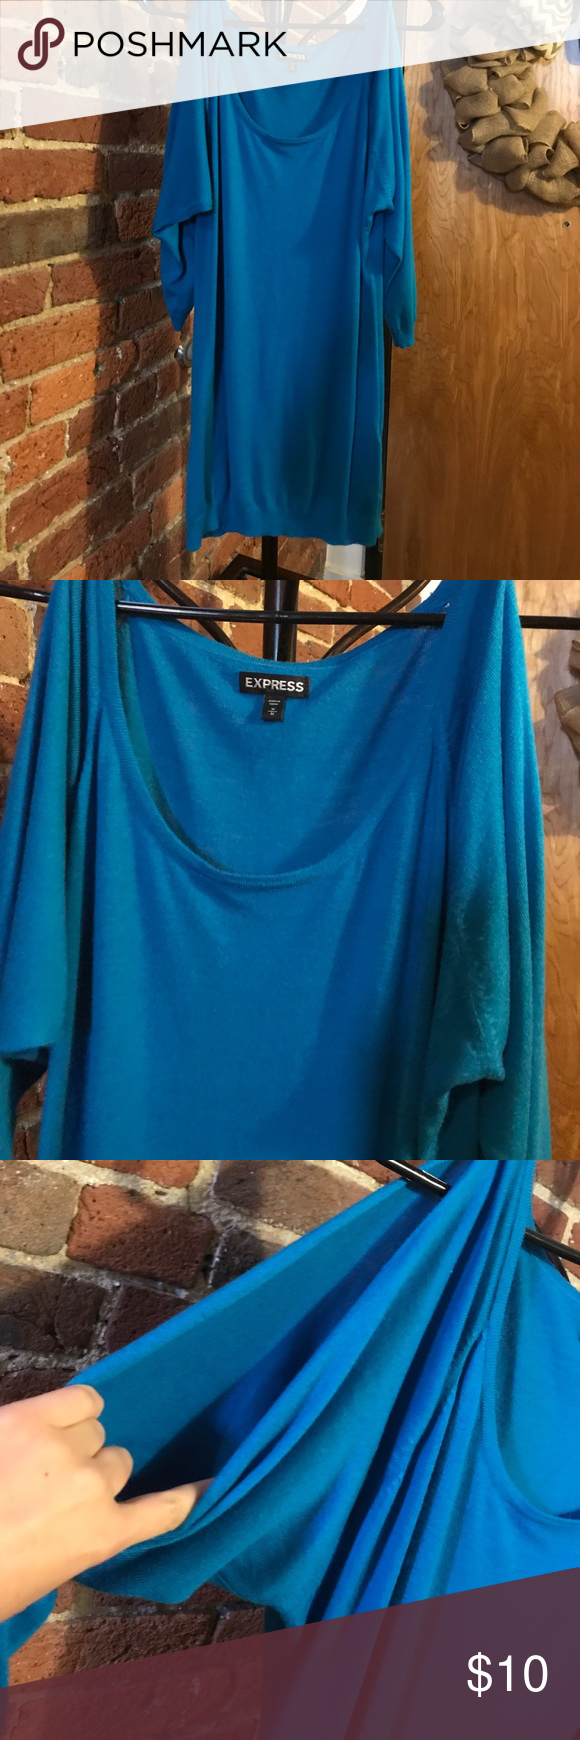 Express keyhole arm shirt Gently worn, no beading, keyhole arms, longer in length, made from rayon, nylon, polyester, and cashmere, super soft! Express Tops Tees - Short Sleeve